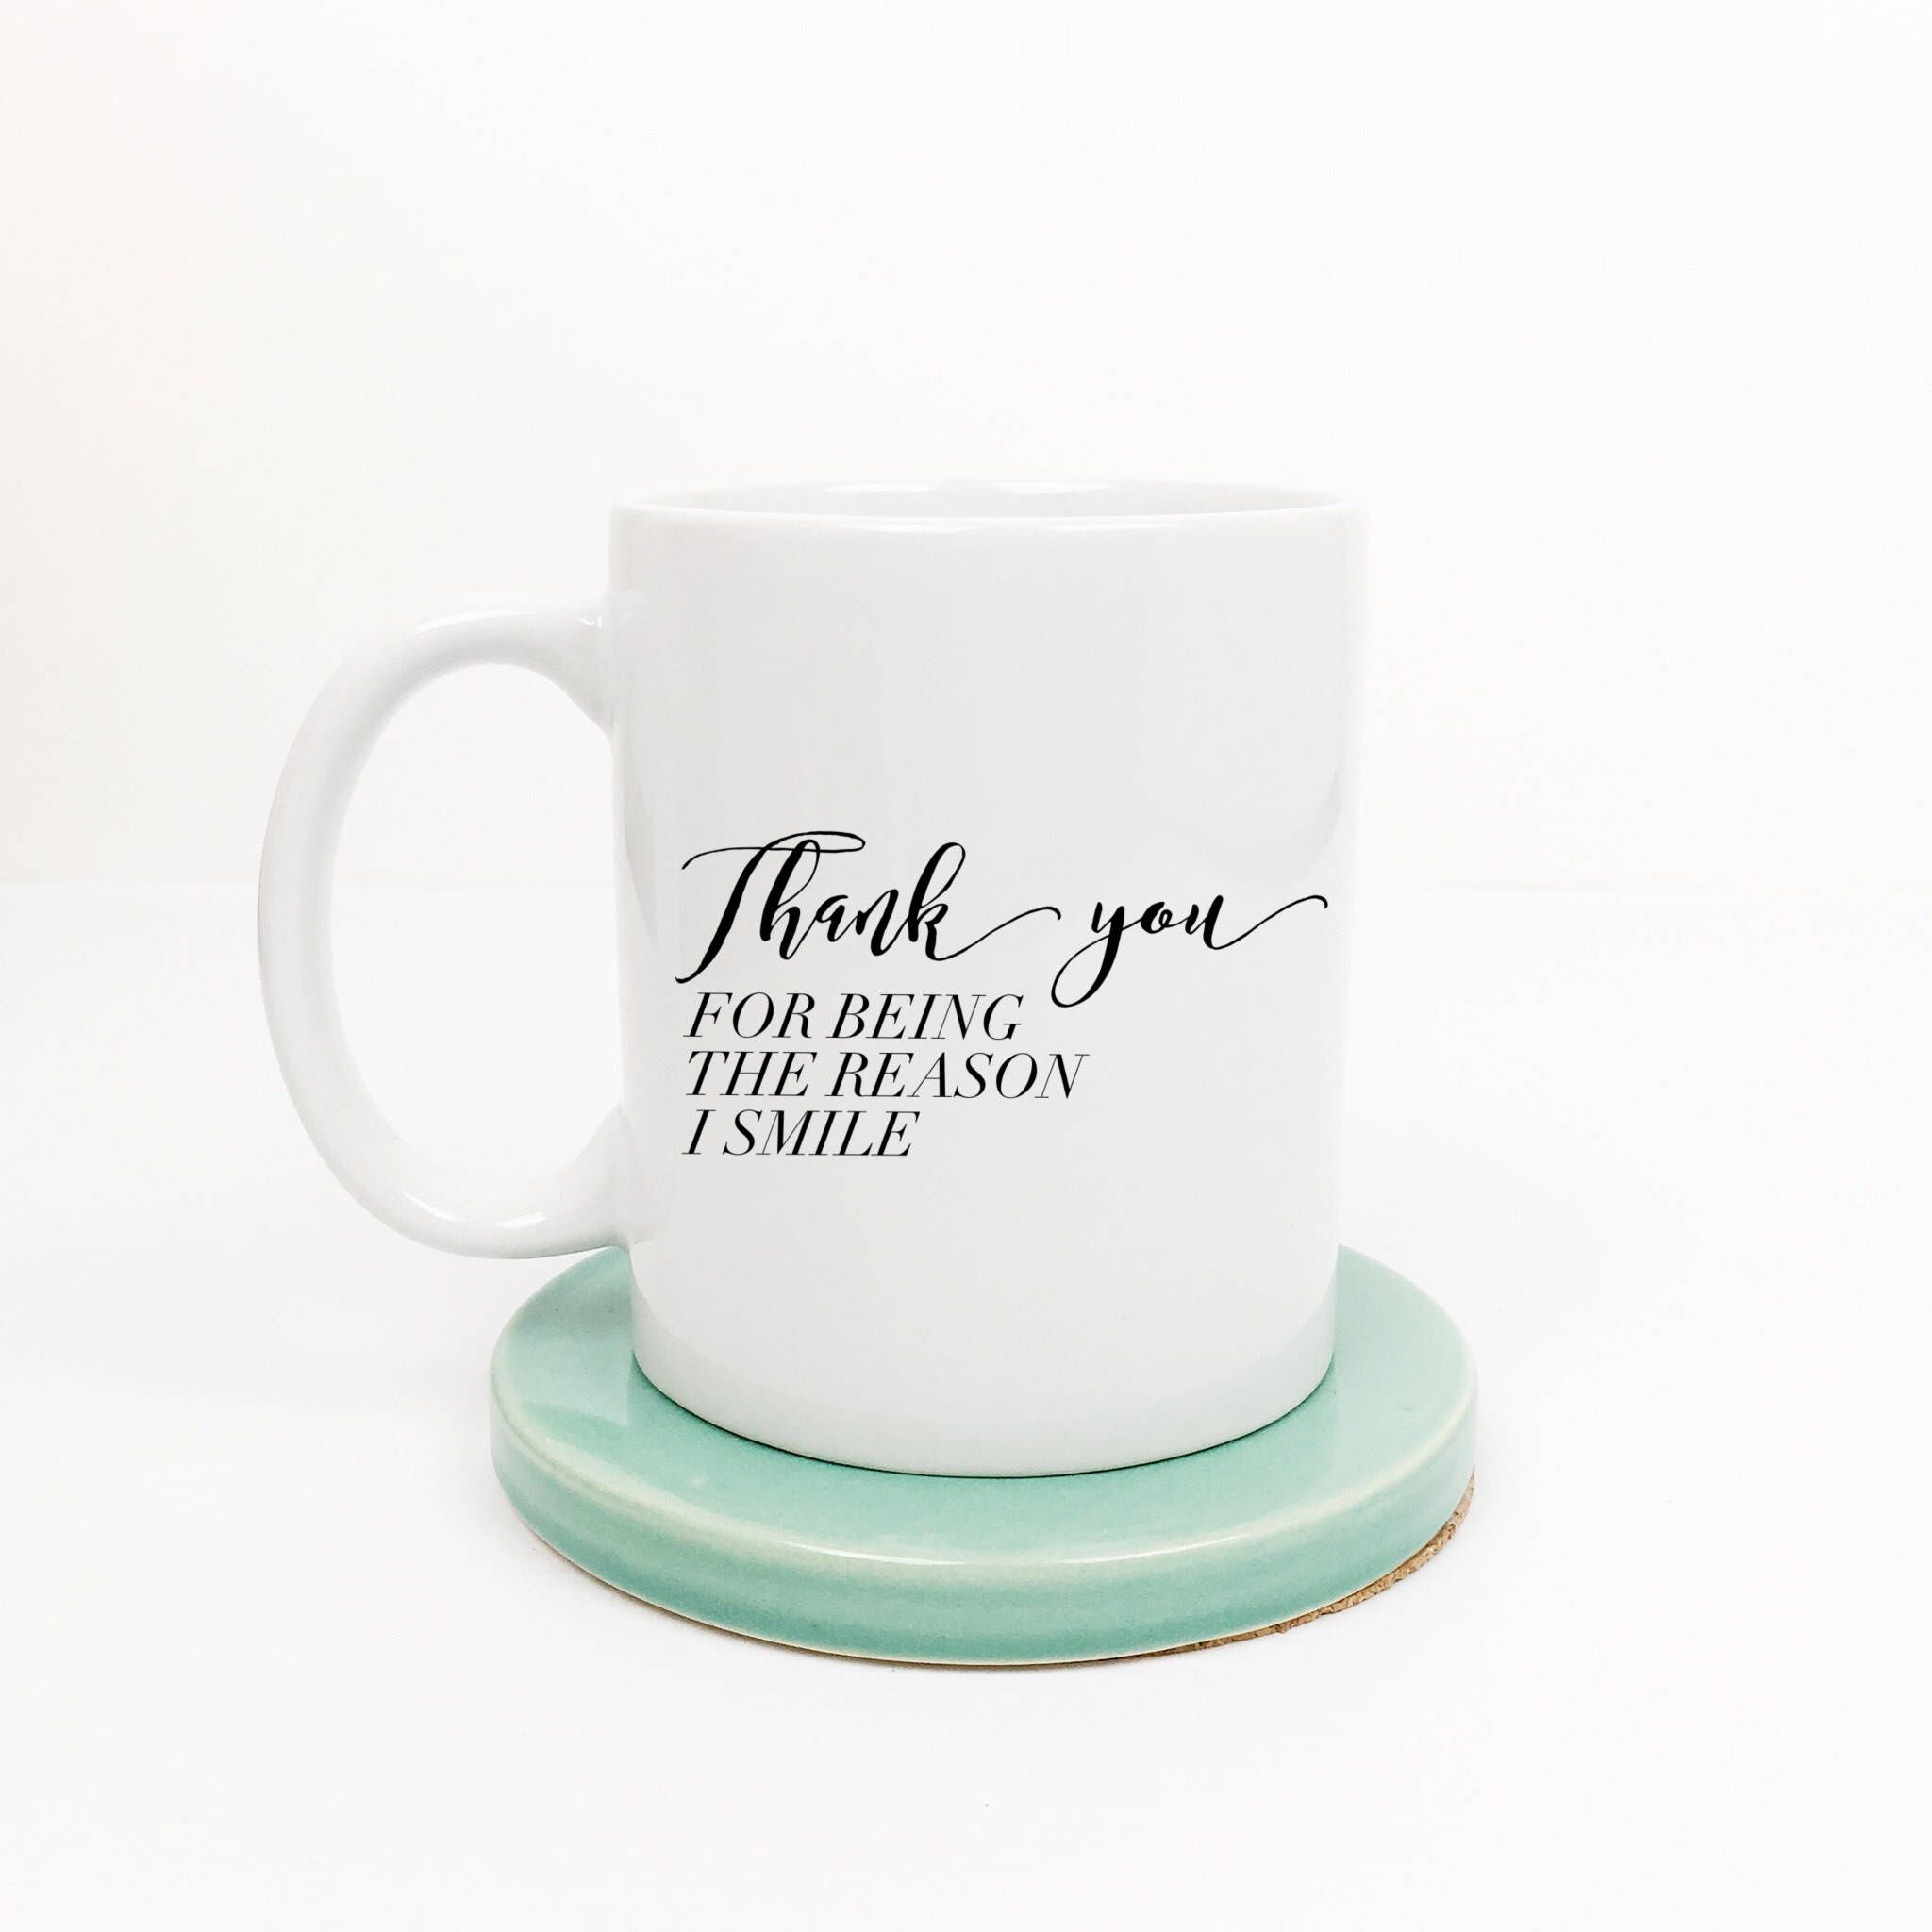 Thank You Gifts Thank You for Being Awesome Gift for Coworker Mom Boss Wife Sister Best Friend Onebttl 12oz Wine Tumbler Appreciation Gifts for Birthday Thanksgiving Christmas-Rose Gold